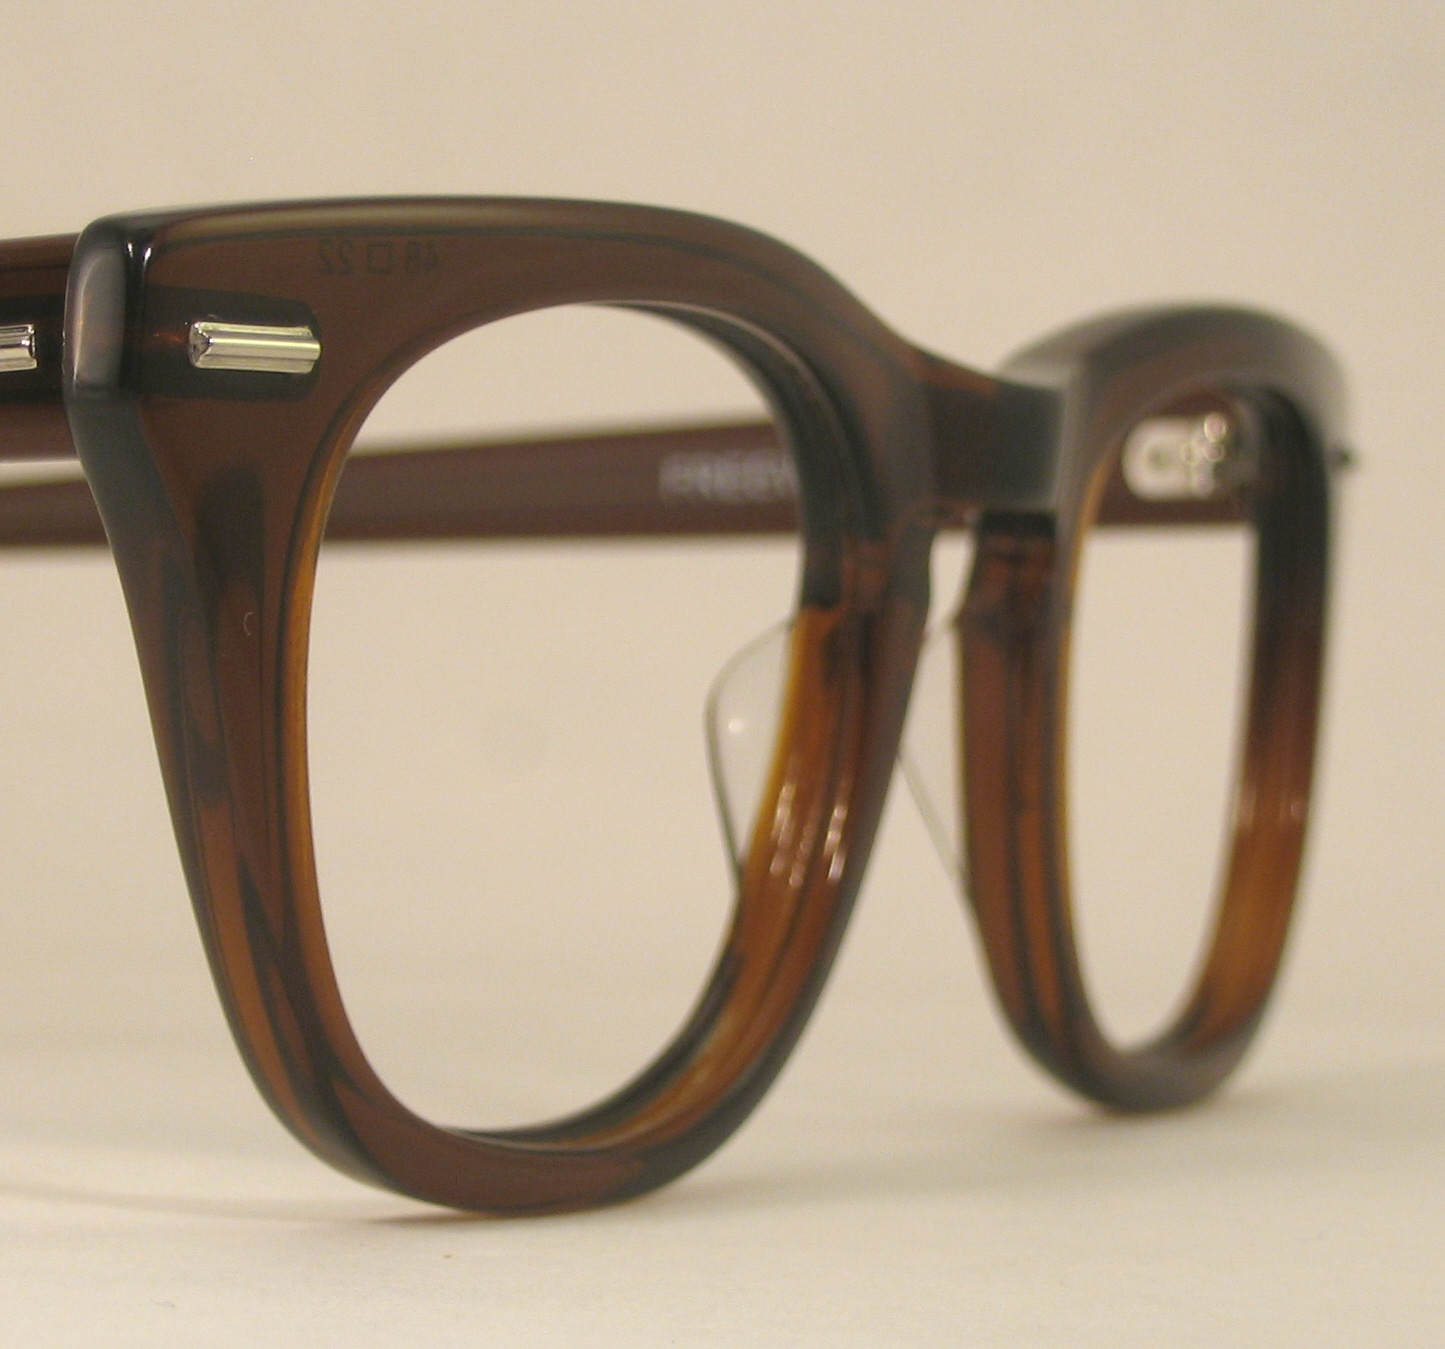 Optometrist Attic - SHURON FREEWAY Brownsmoke CLASSIC EYEGLASS FRAMES